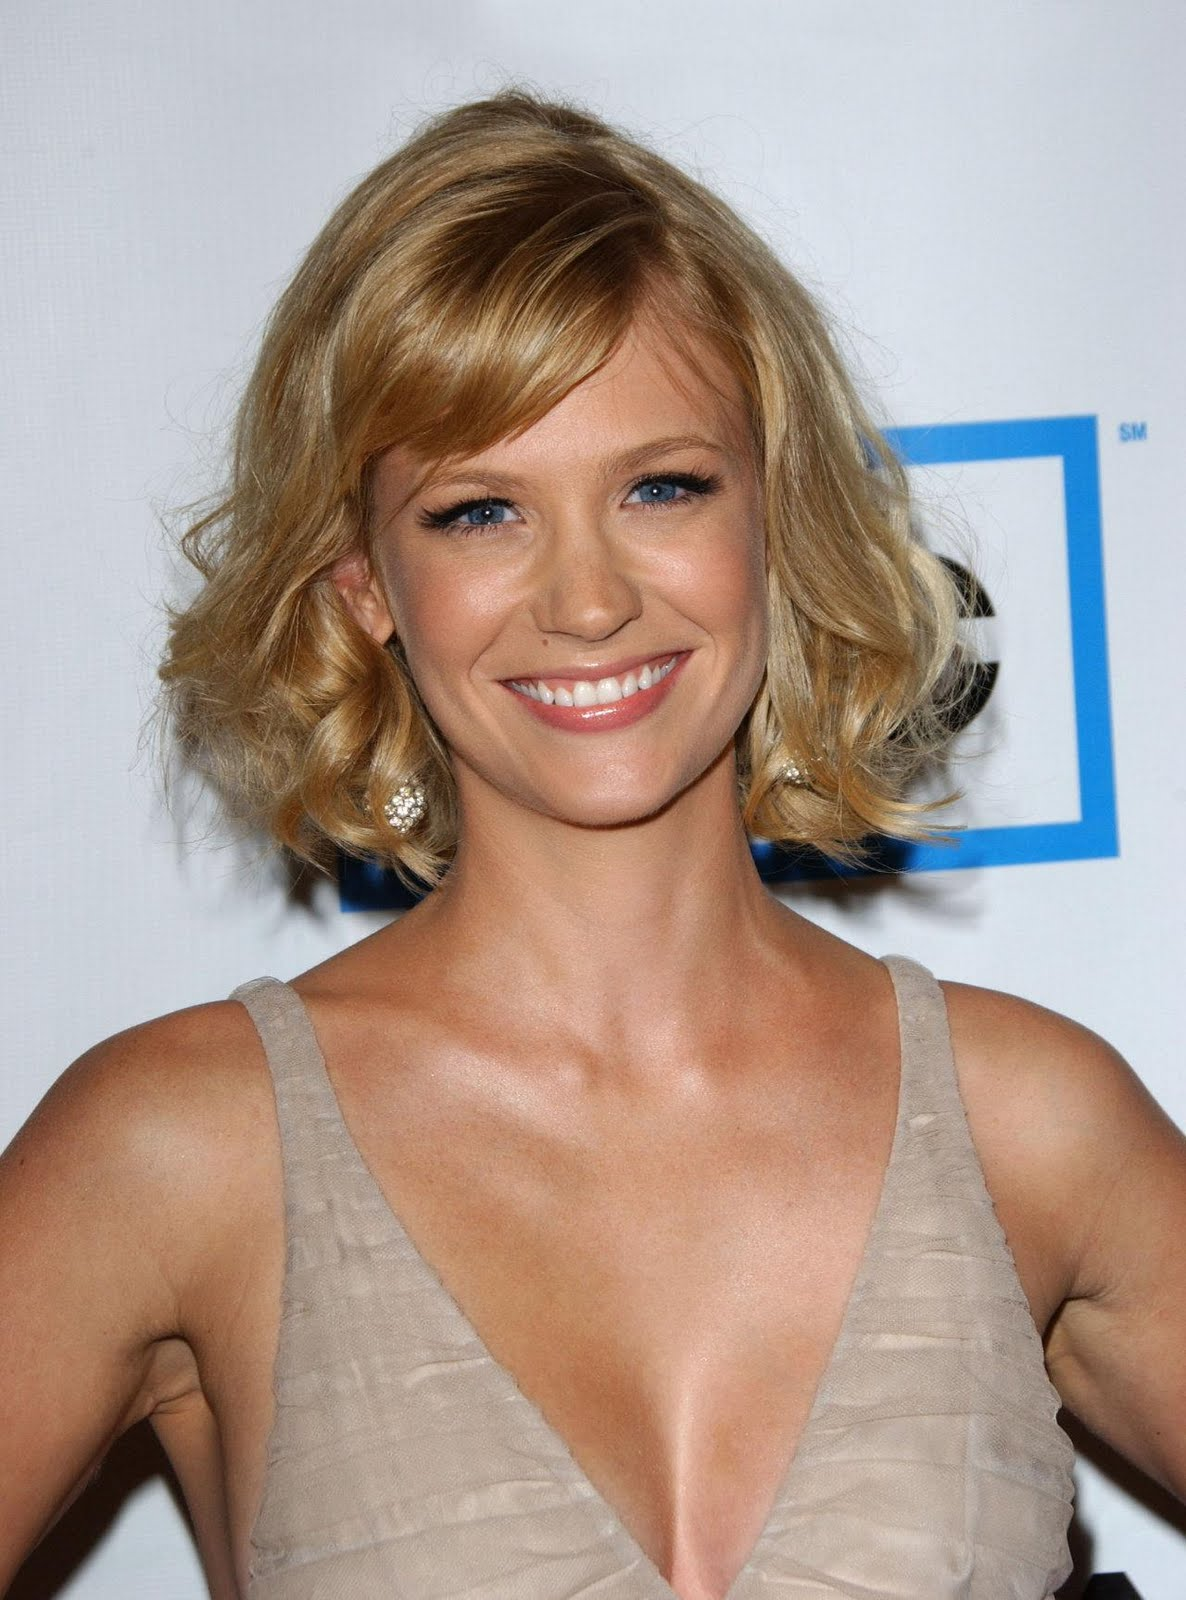 http://3.bp.blogspot.com/-6Fvqrvg51S4/TgVMyvSBQOI/AAAAAAAAEkk/kunmGlq1bXs/s1600/January-Jones-photo-005.jpg